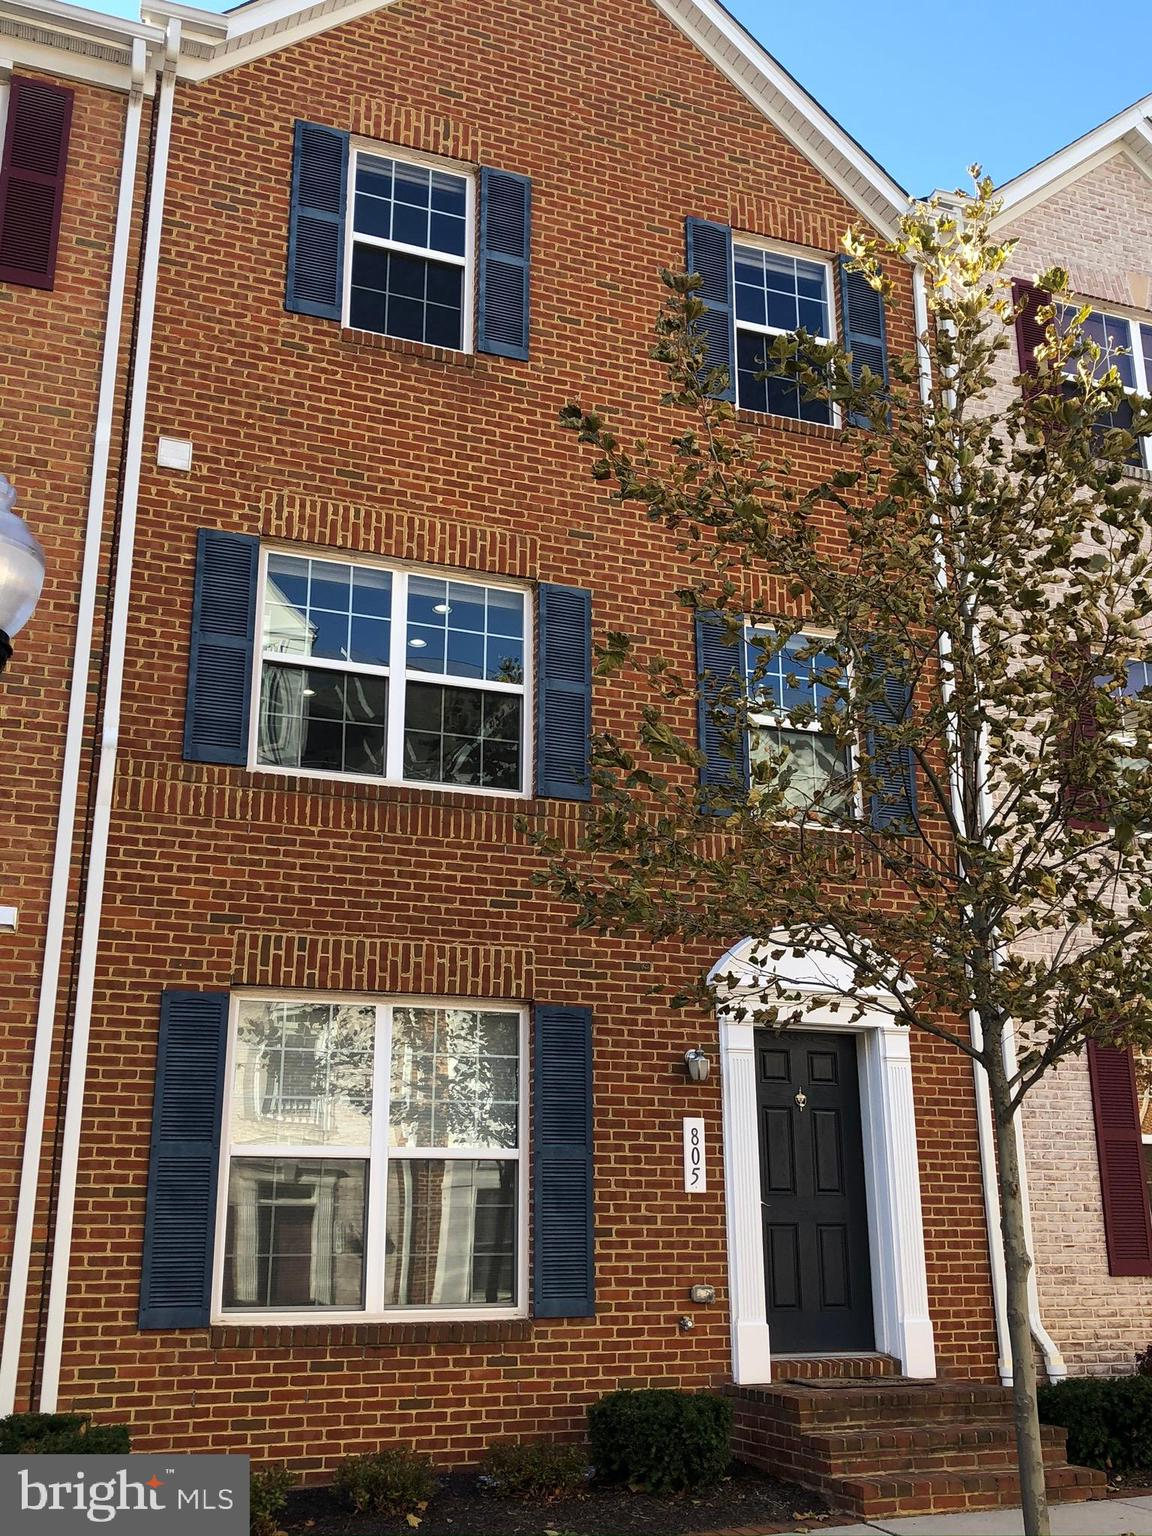 Beautiful 2 Car, 4 Bedroom, 3-1/2 Bath, 3 Level Garage Townhouse just built in 2010, it's practicall